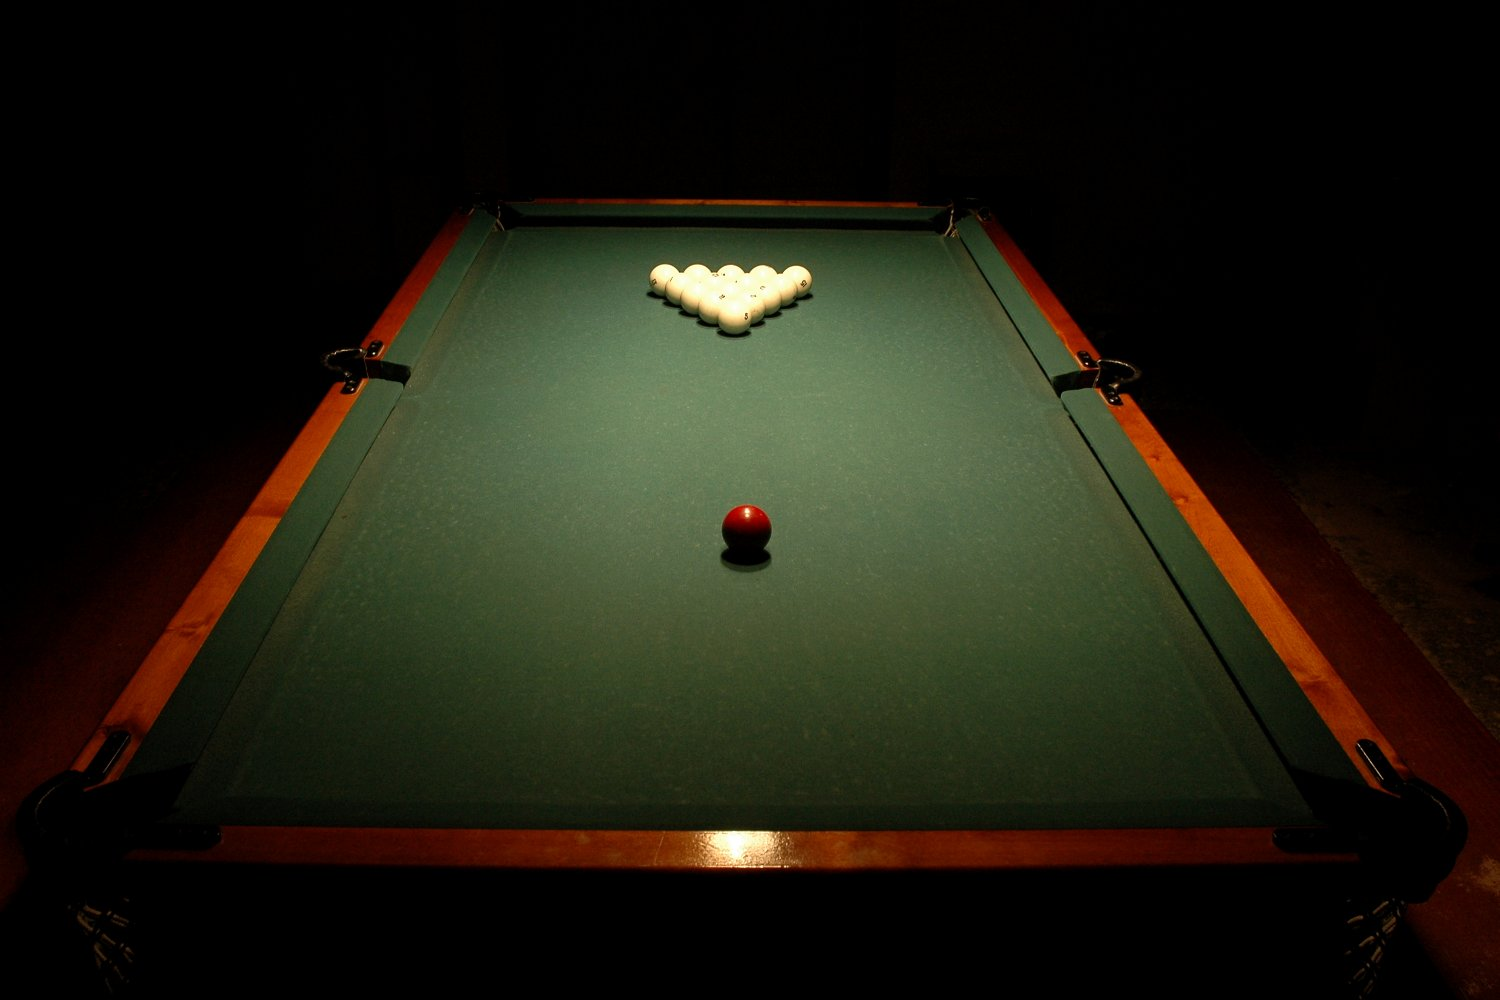 Billiards - 03 photo